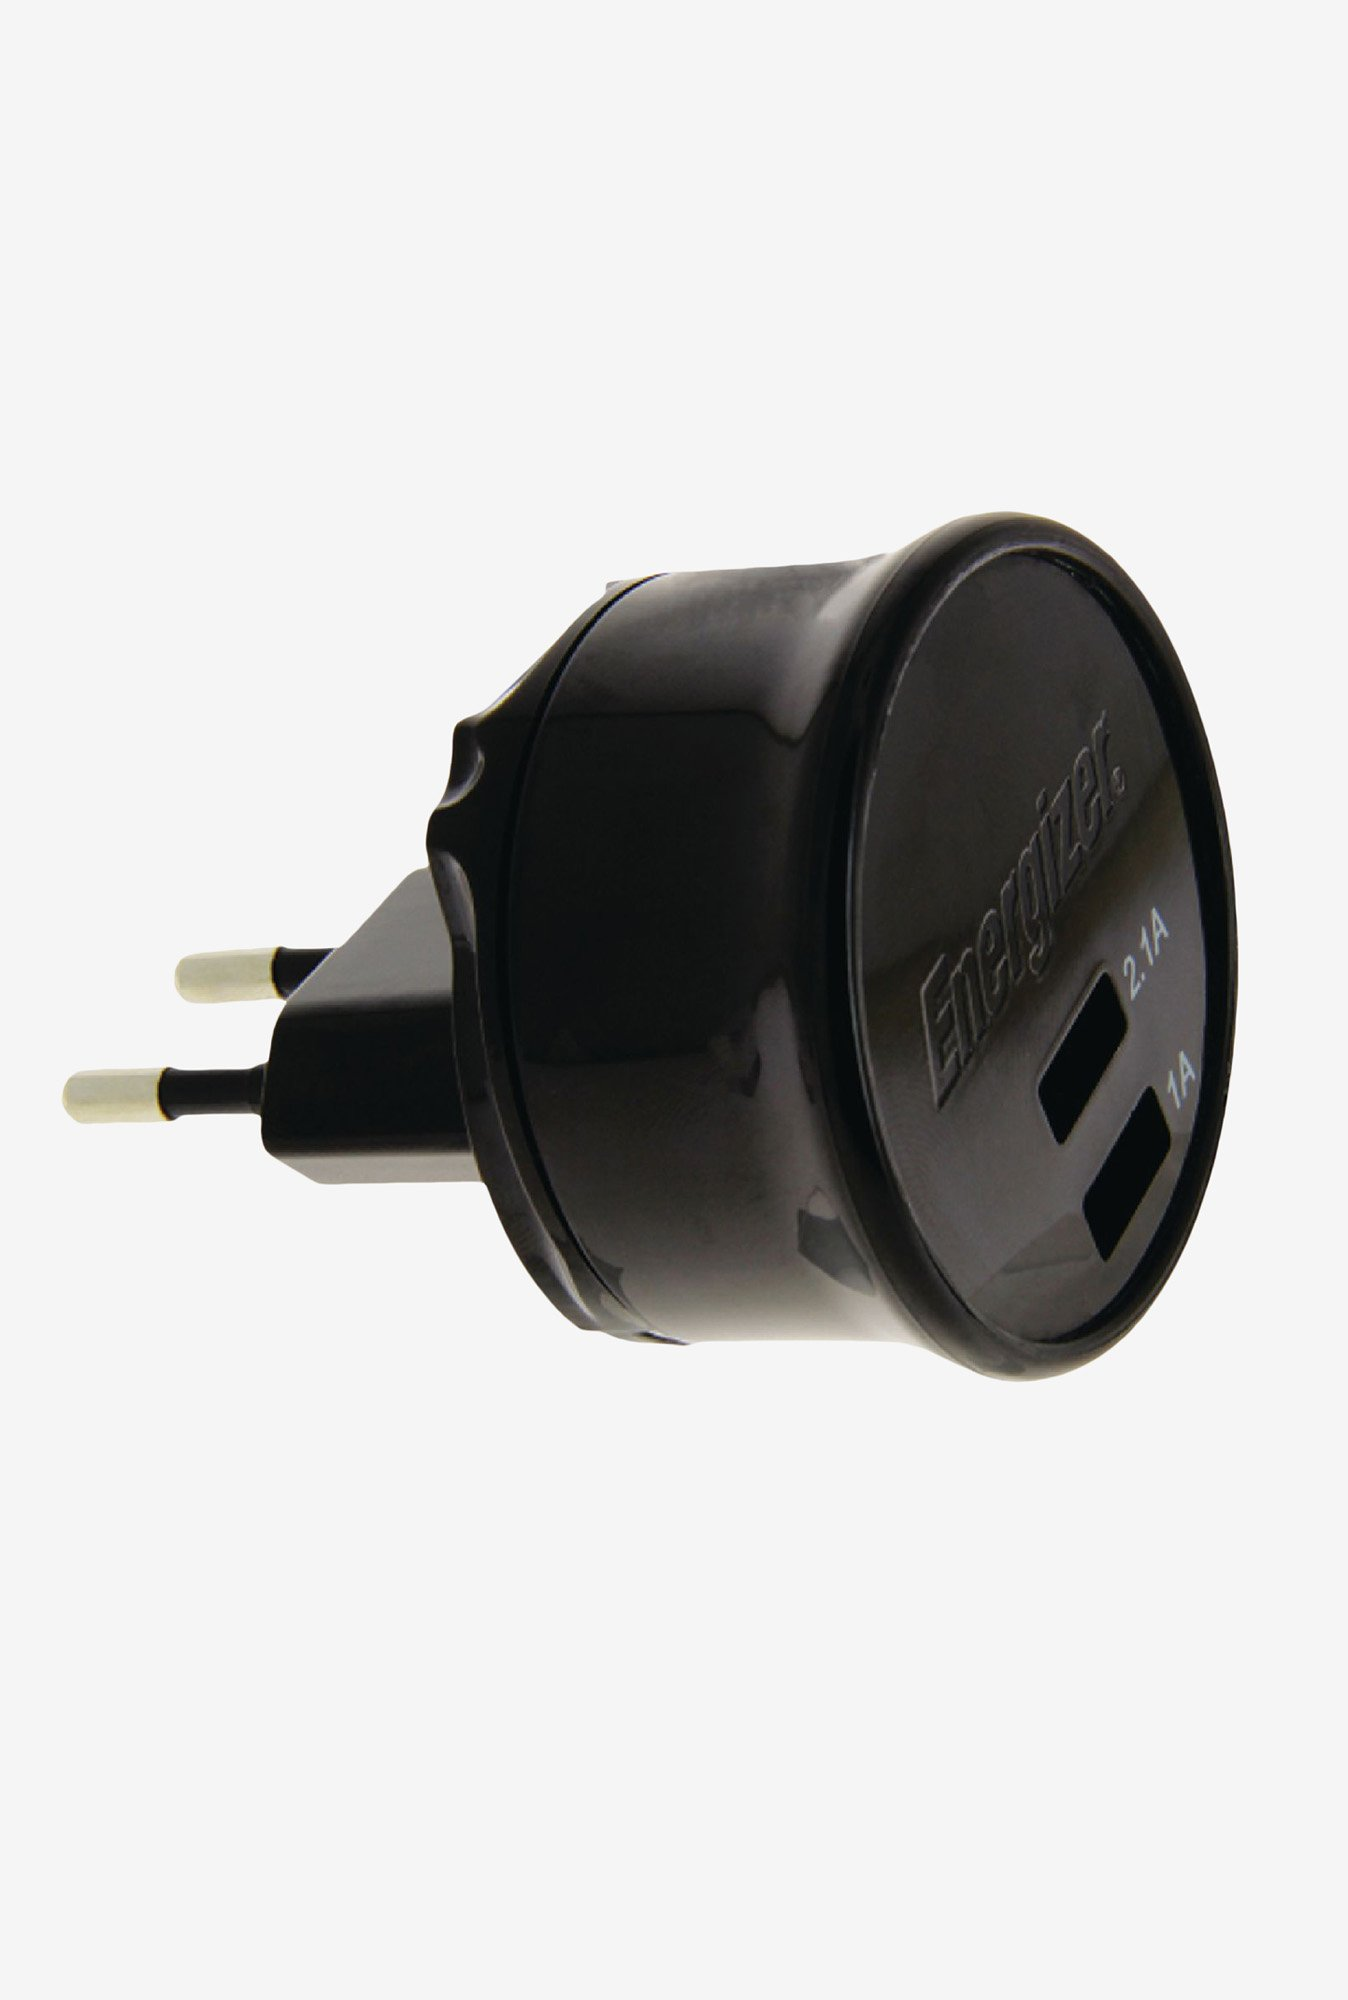 Energizer Ultimate AC2UUNUMC2 Wall Charger Black